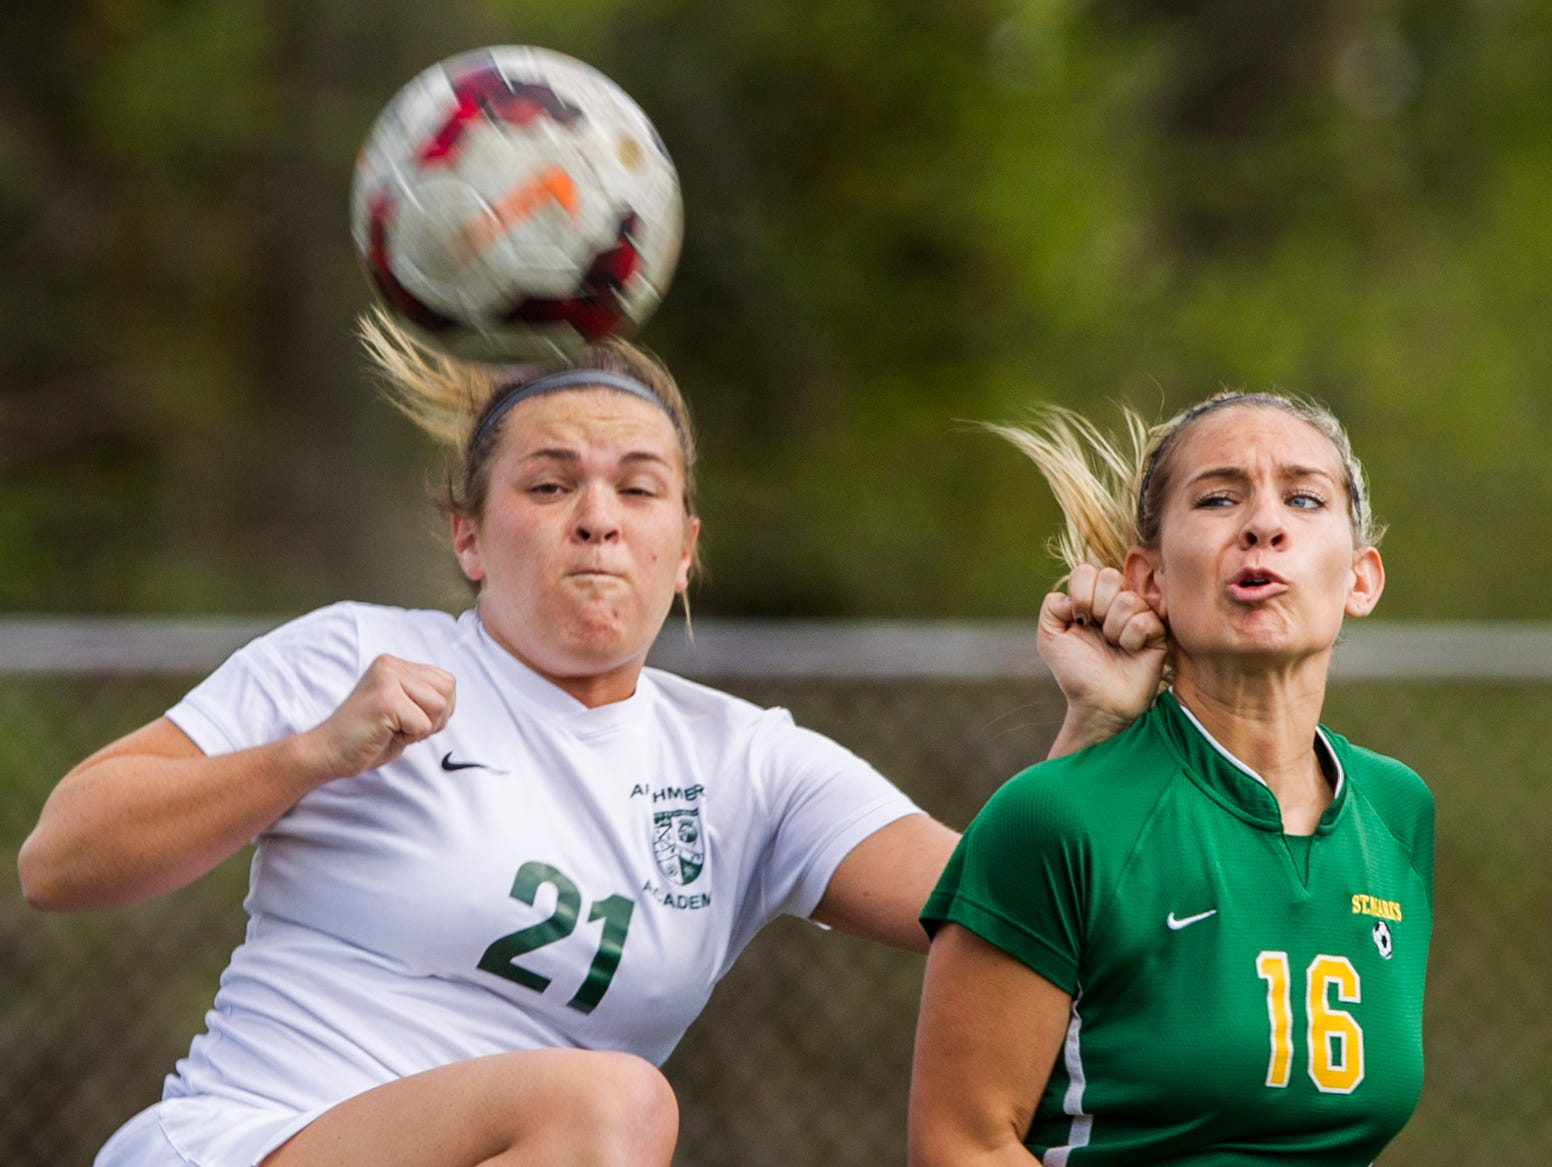 Archmere's Gillian Sweeny (No. 21) collides with St. Mark's Chelsea Vincelette as the ball enters the box during a game at Archmere on Wednesday afternoon. Archmere defeated St. Mark's by a score of 2-1.